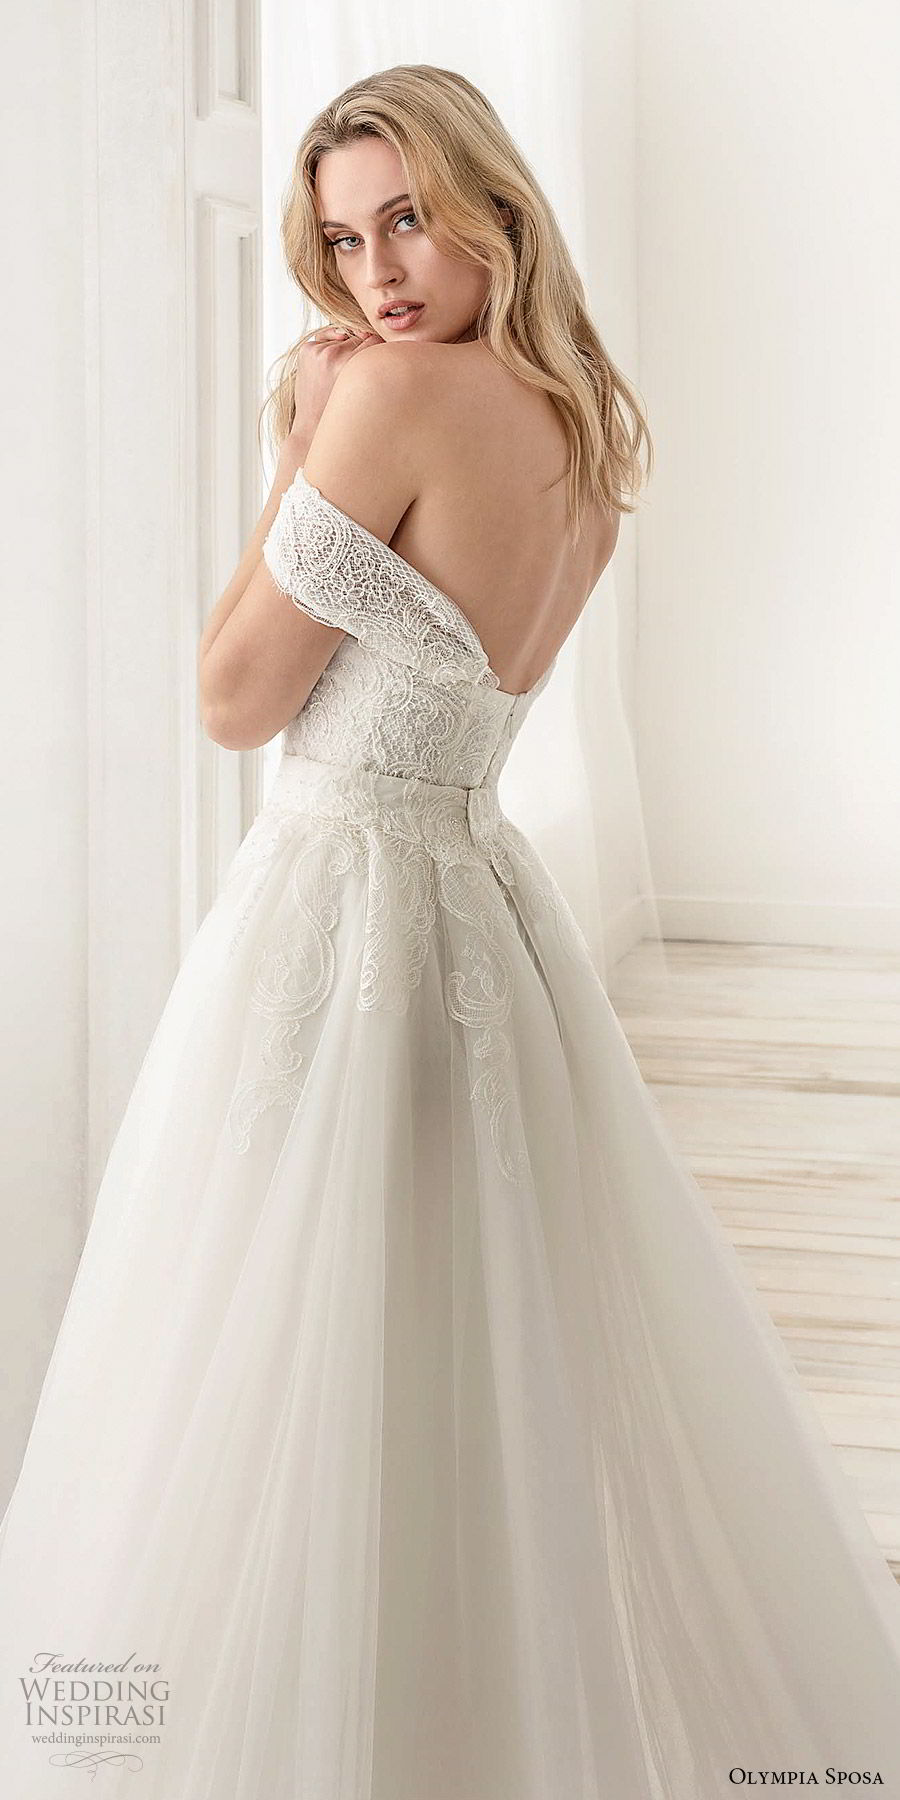 olympia sposa 2020 bridal off shoulder sweetheart embellished bodice sheath wedding dress a line ball gown overskirt (12) modern romantic cathedral train zbv